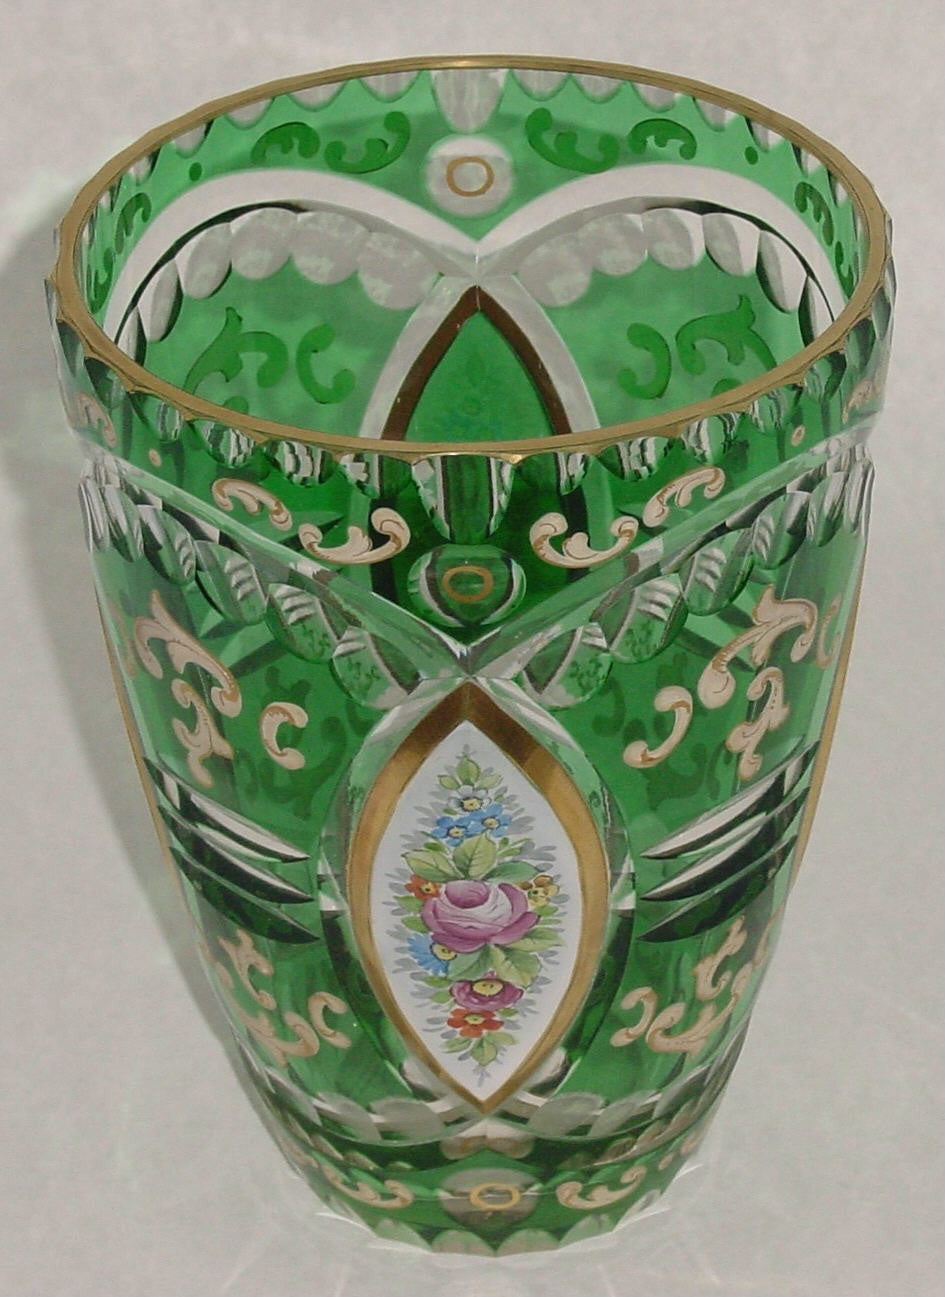 910050 Green Cased /W 4 Oval Anels Of Pntd Flowers On White, Fancy, Bohemian Glassware, Antique, - ReeceFurniture.com - Free Local Pick Ups: Frankenmuth, MI, Indianapolis, IN, Chicago Ridge, IL, and Detroit, MI